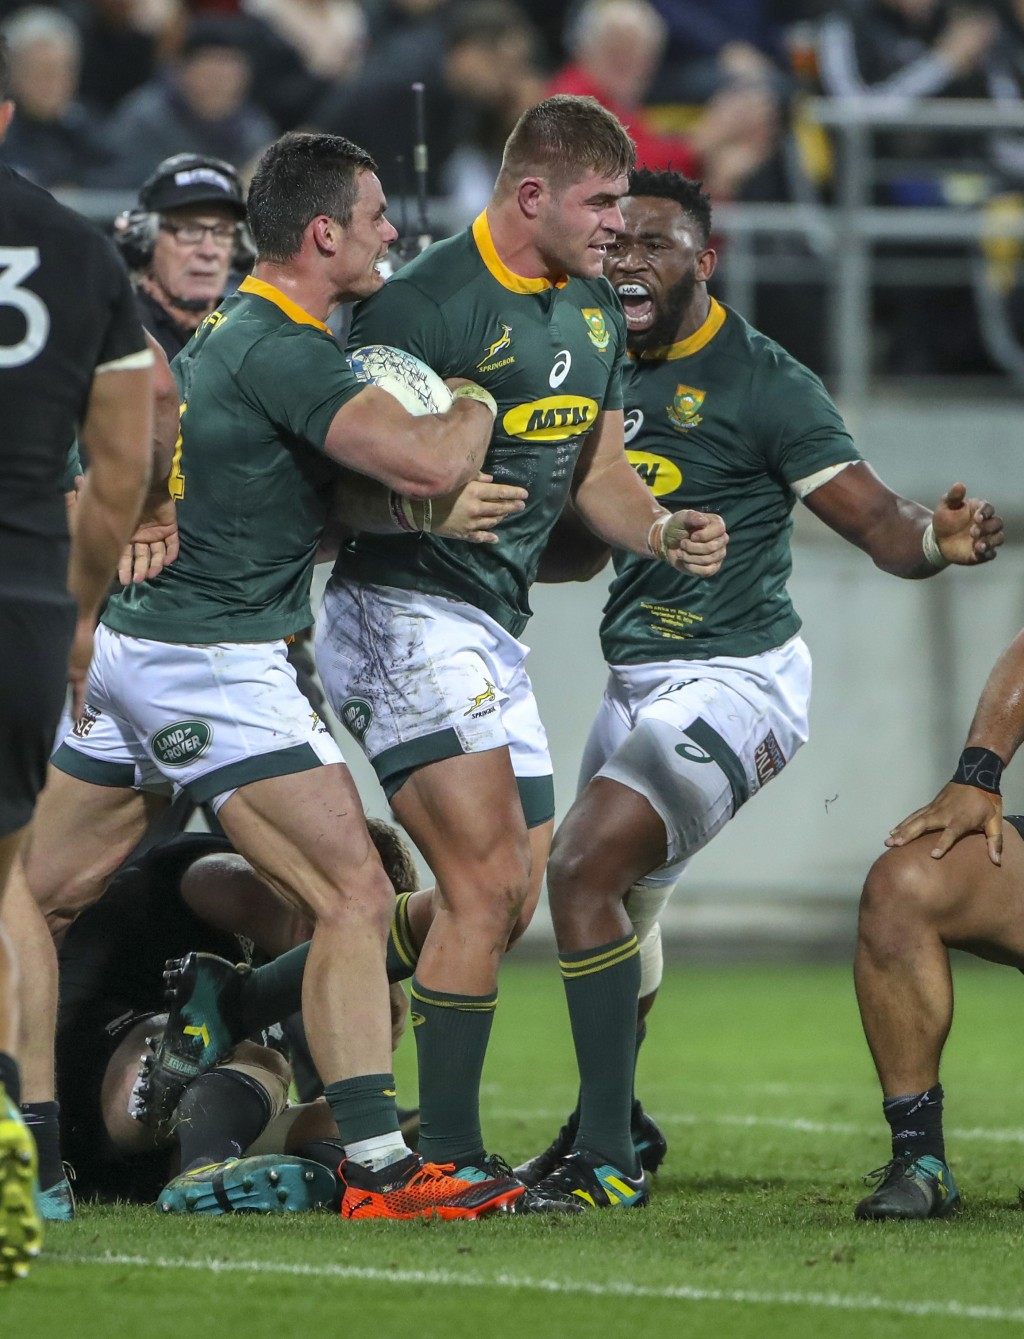 South Africa's Malcolm Marx, center, is congratulated on his try by teammates Jesse Kriel and Siya Kolisi, right, during a rugby championship test mat